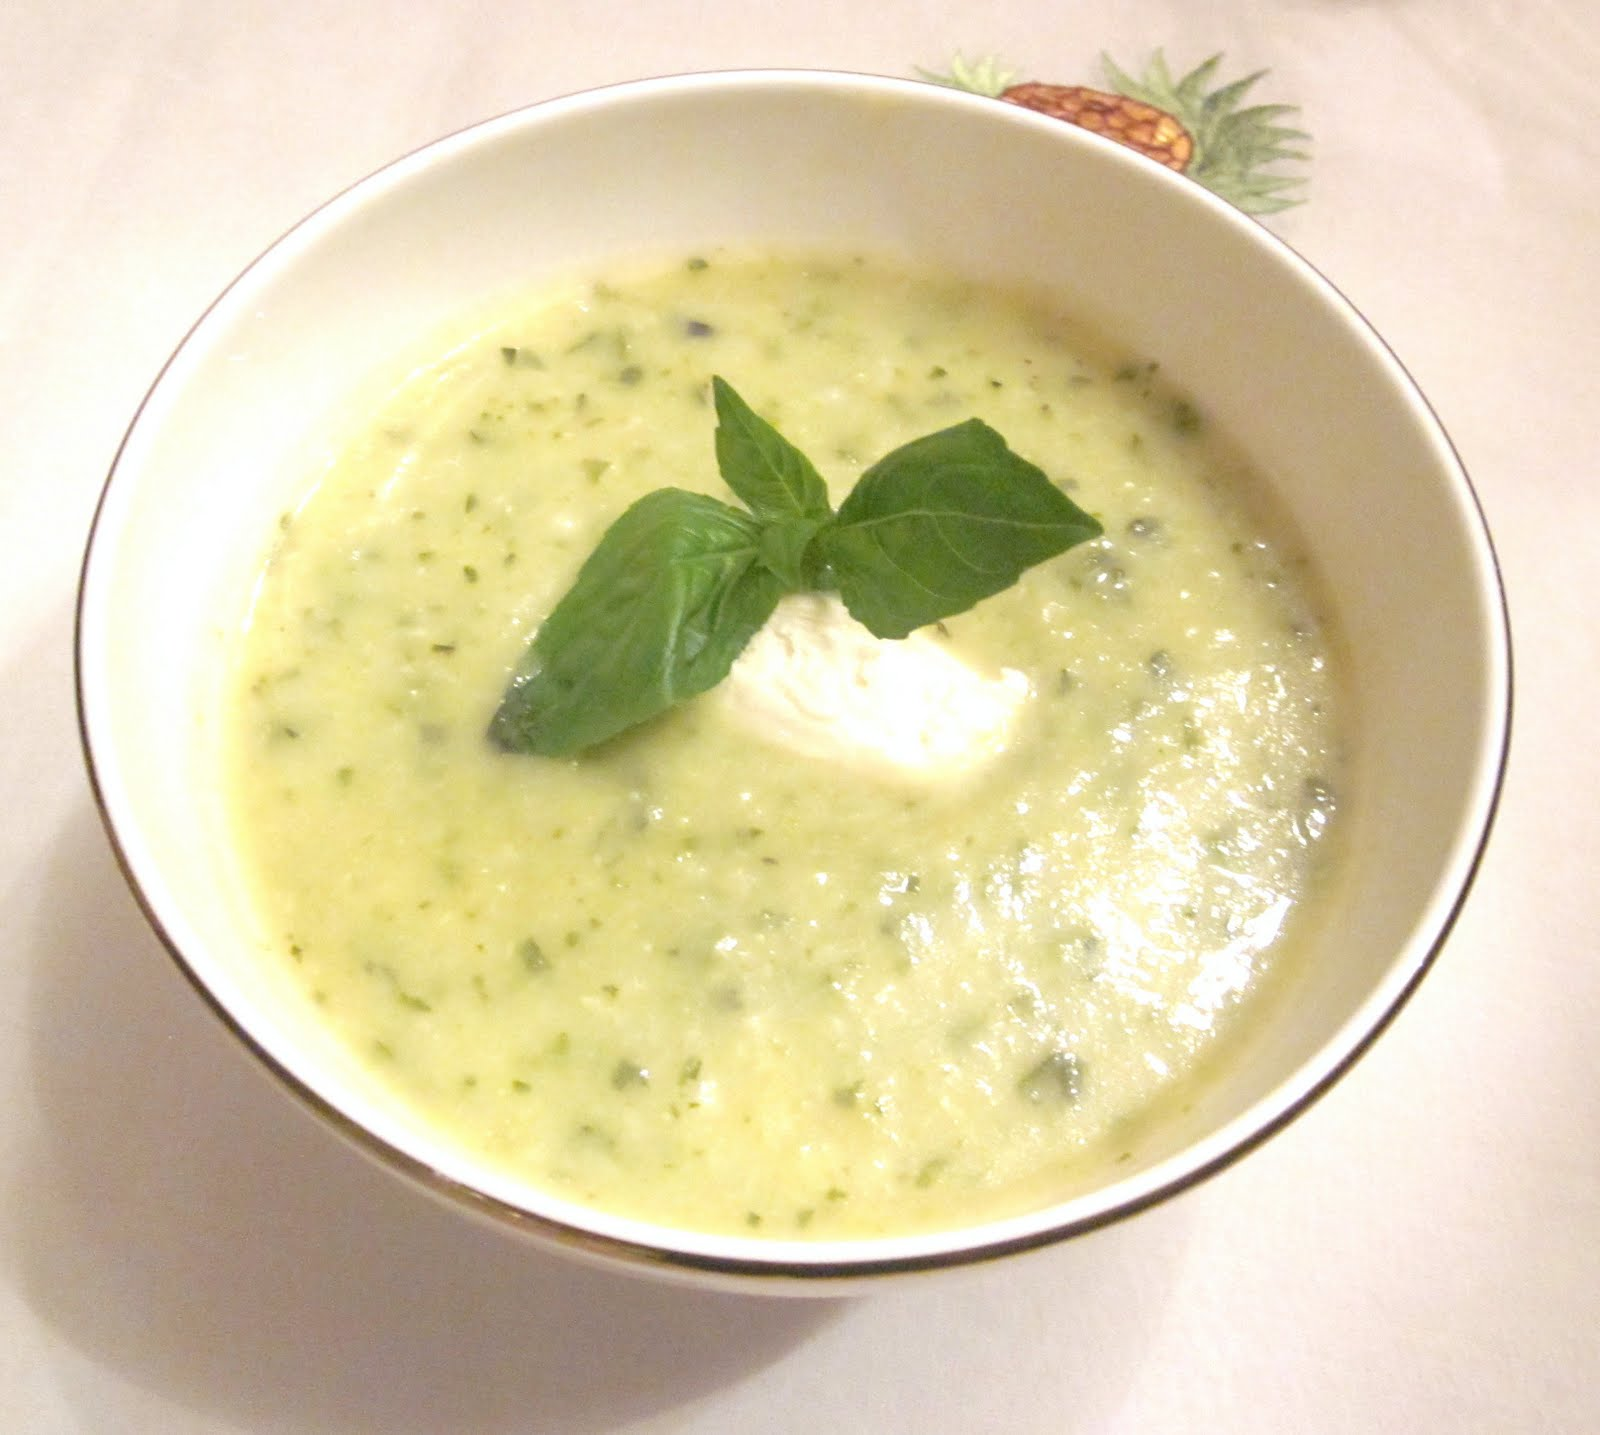 ... : Easy, Elegant Italian: Zucchini Basil Soup and Tuscan Bread Salad